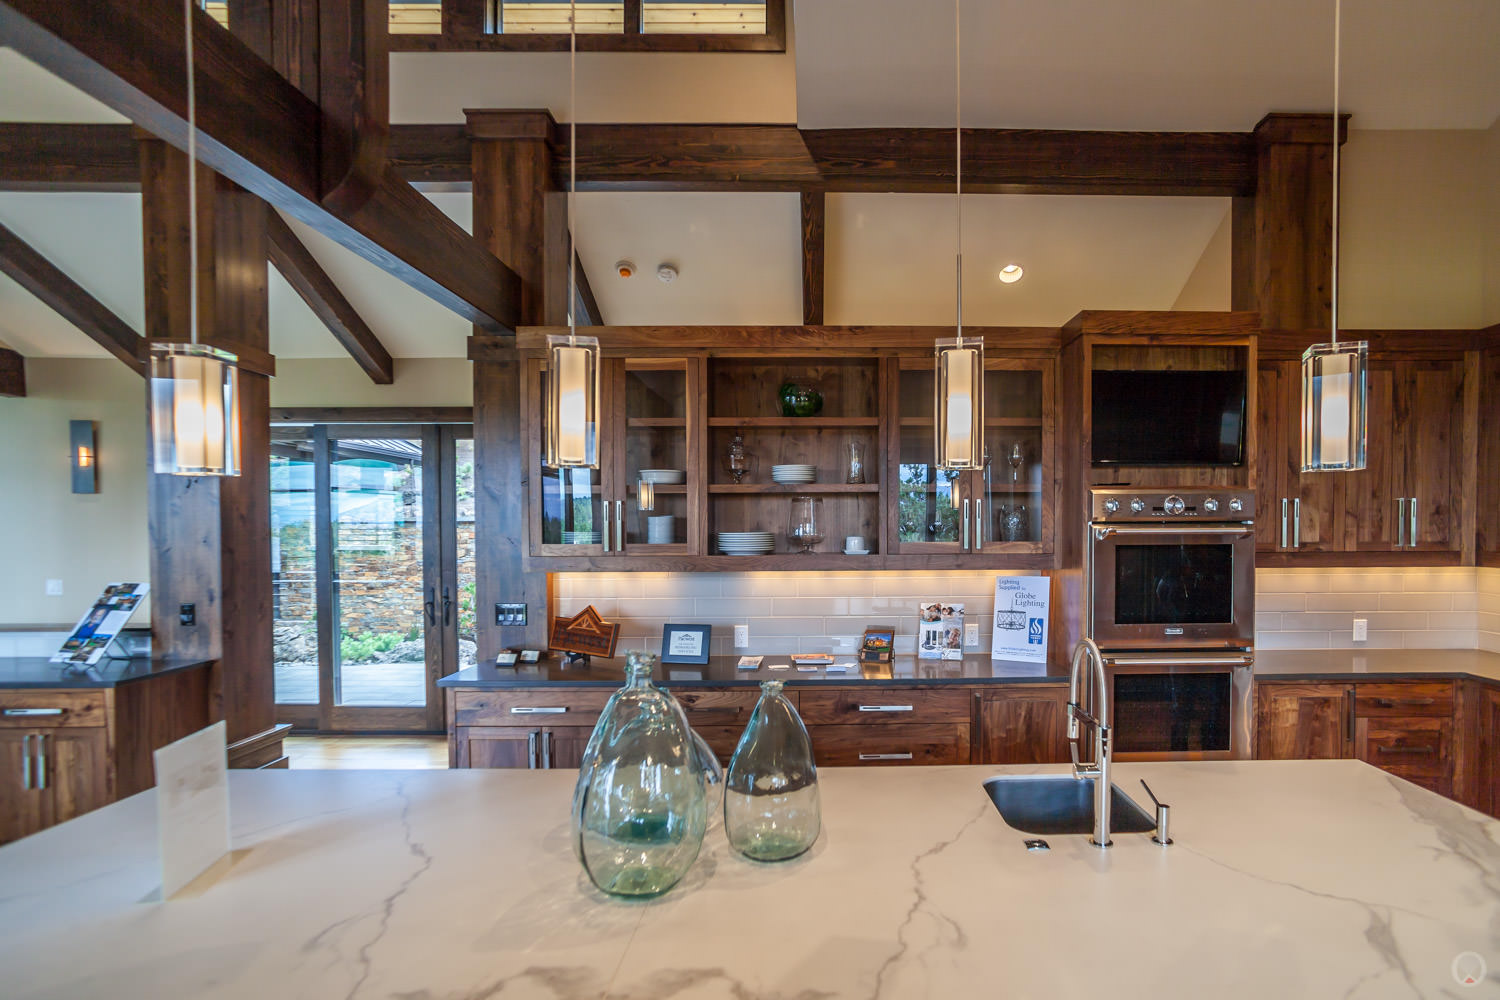 Pendant light fixtures.Also note: Shaker-style cabinets, stainless steel appliances, and subway tile backsplash.